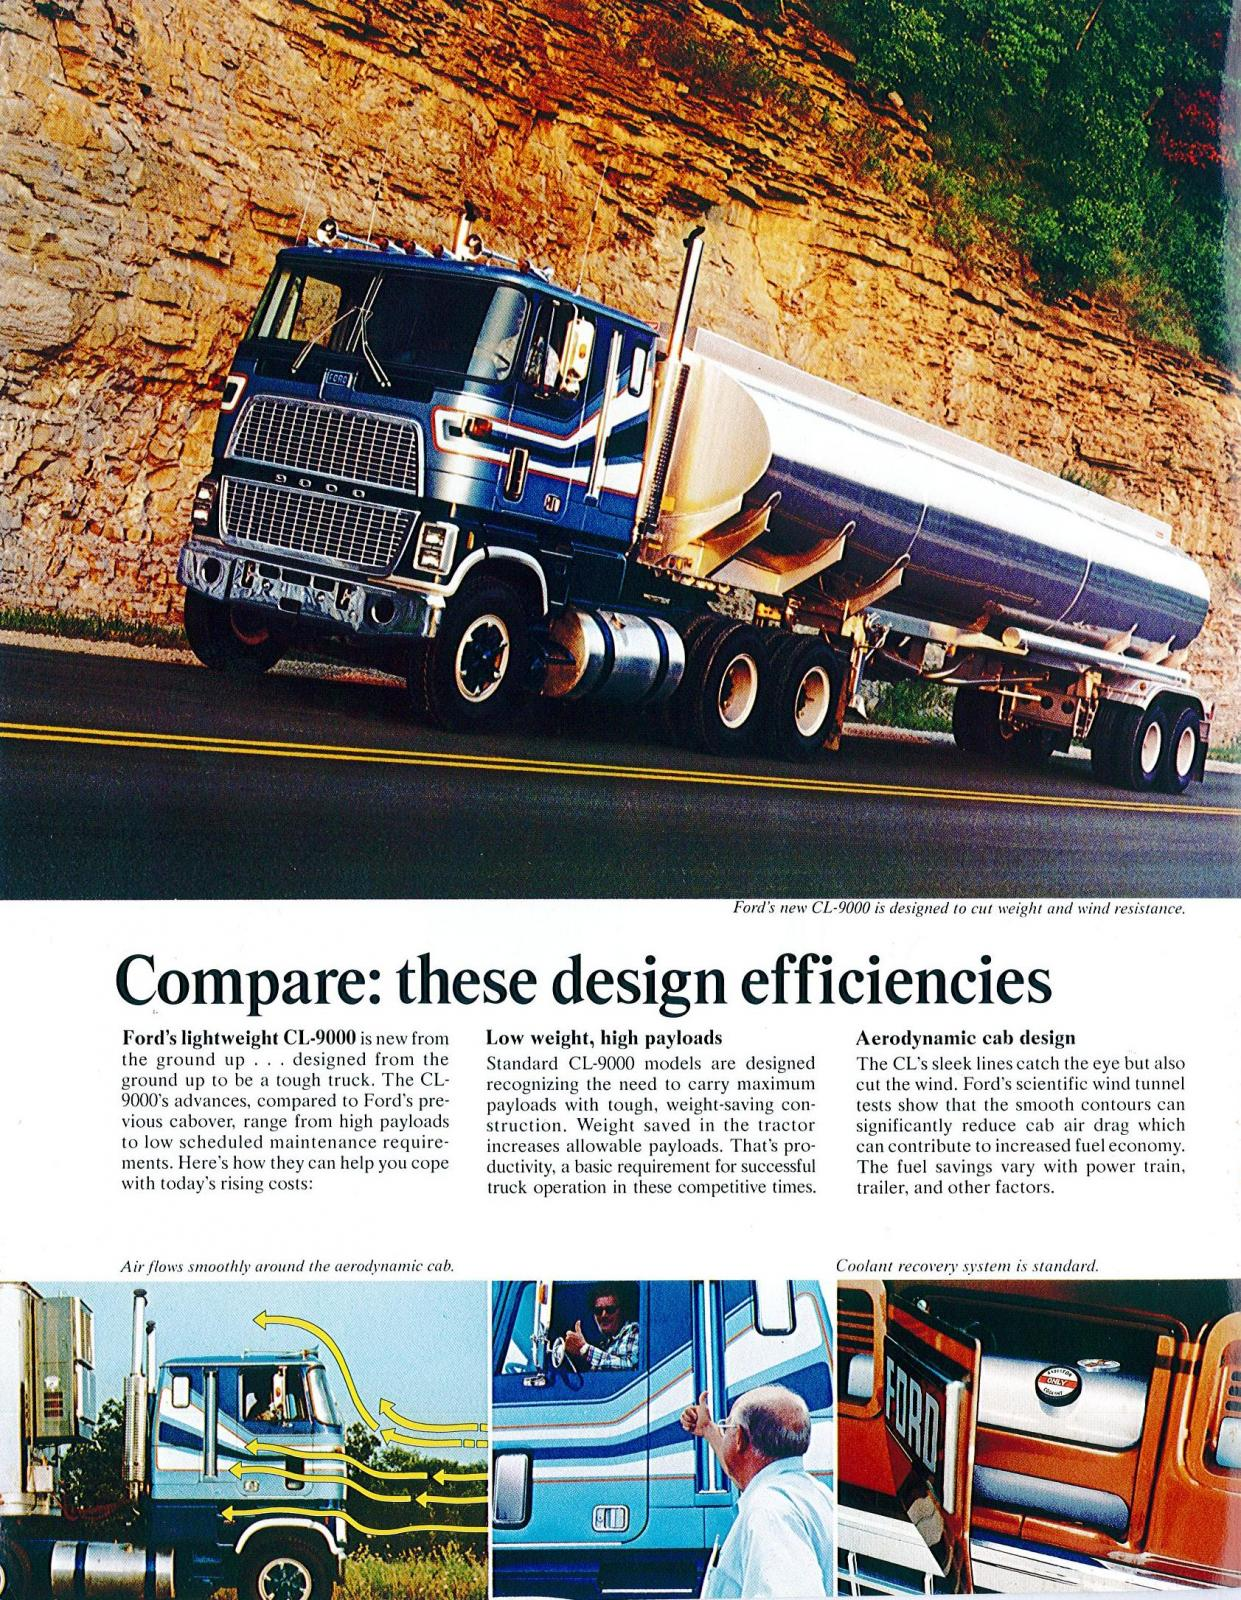 Ford Cl 9000 Fords Surprise In 1977 Other Truck Makes 1980 Coe Post 5381 0 13327100 1362718133 Thumbjp